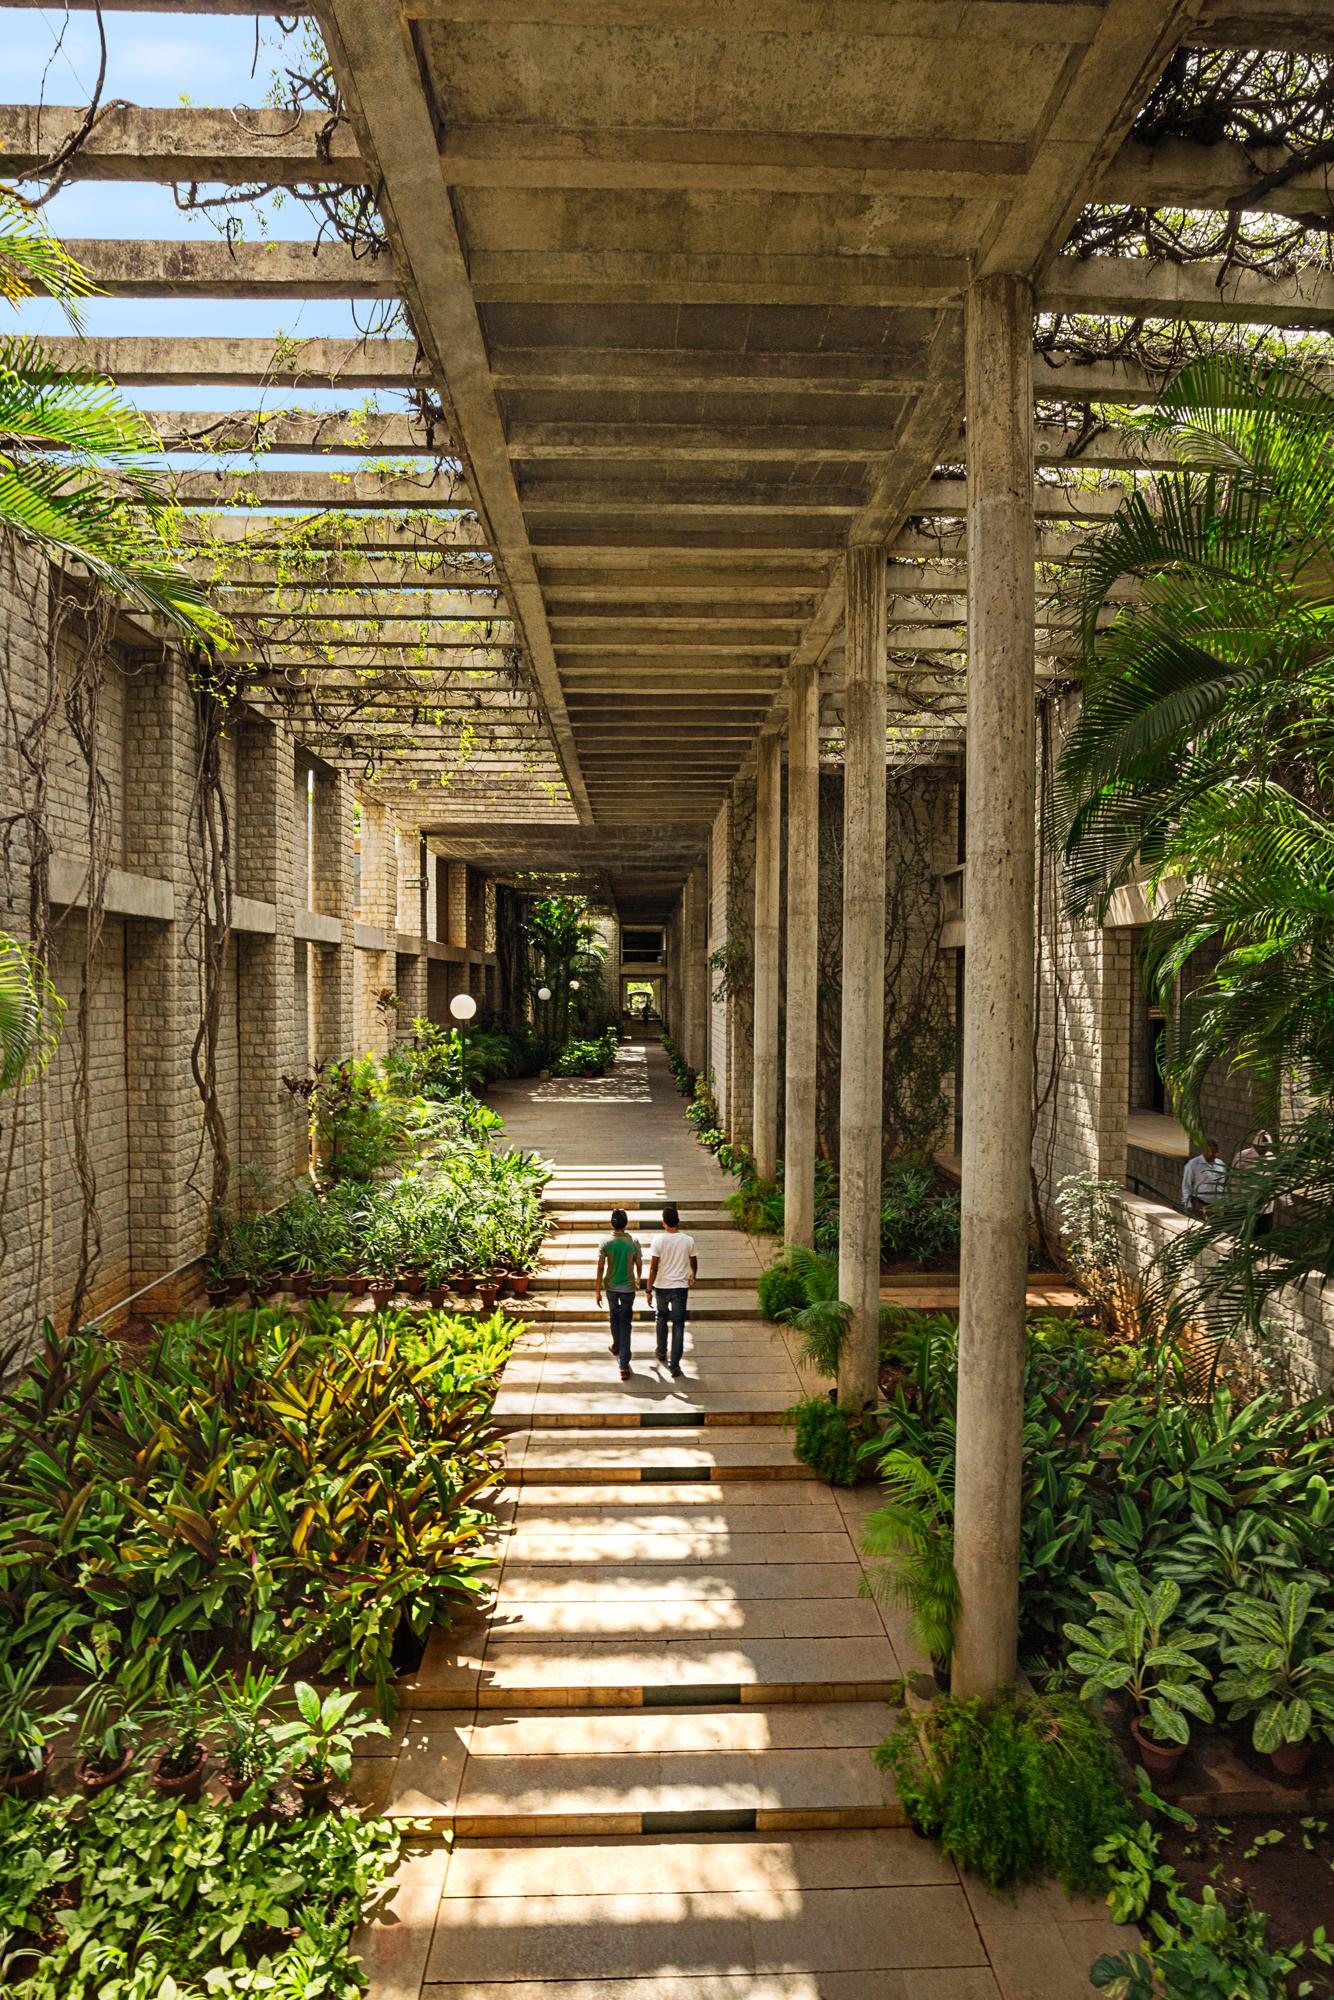 Indian Institute of Management courtyard